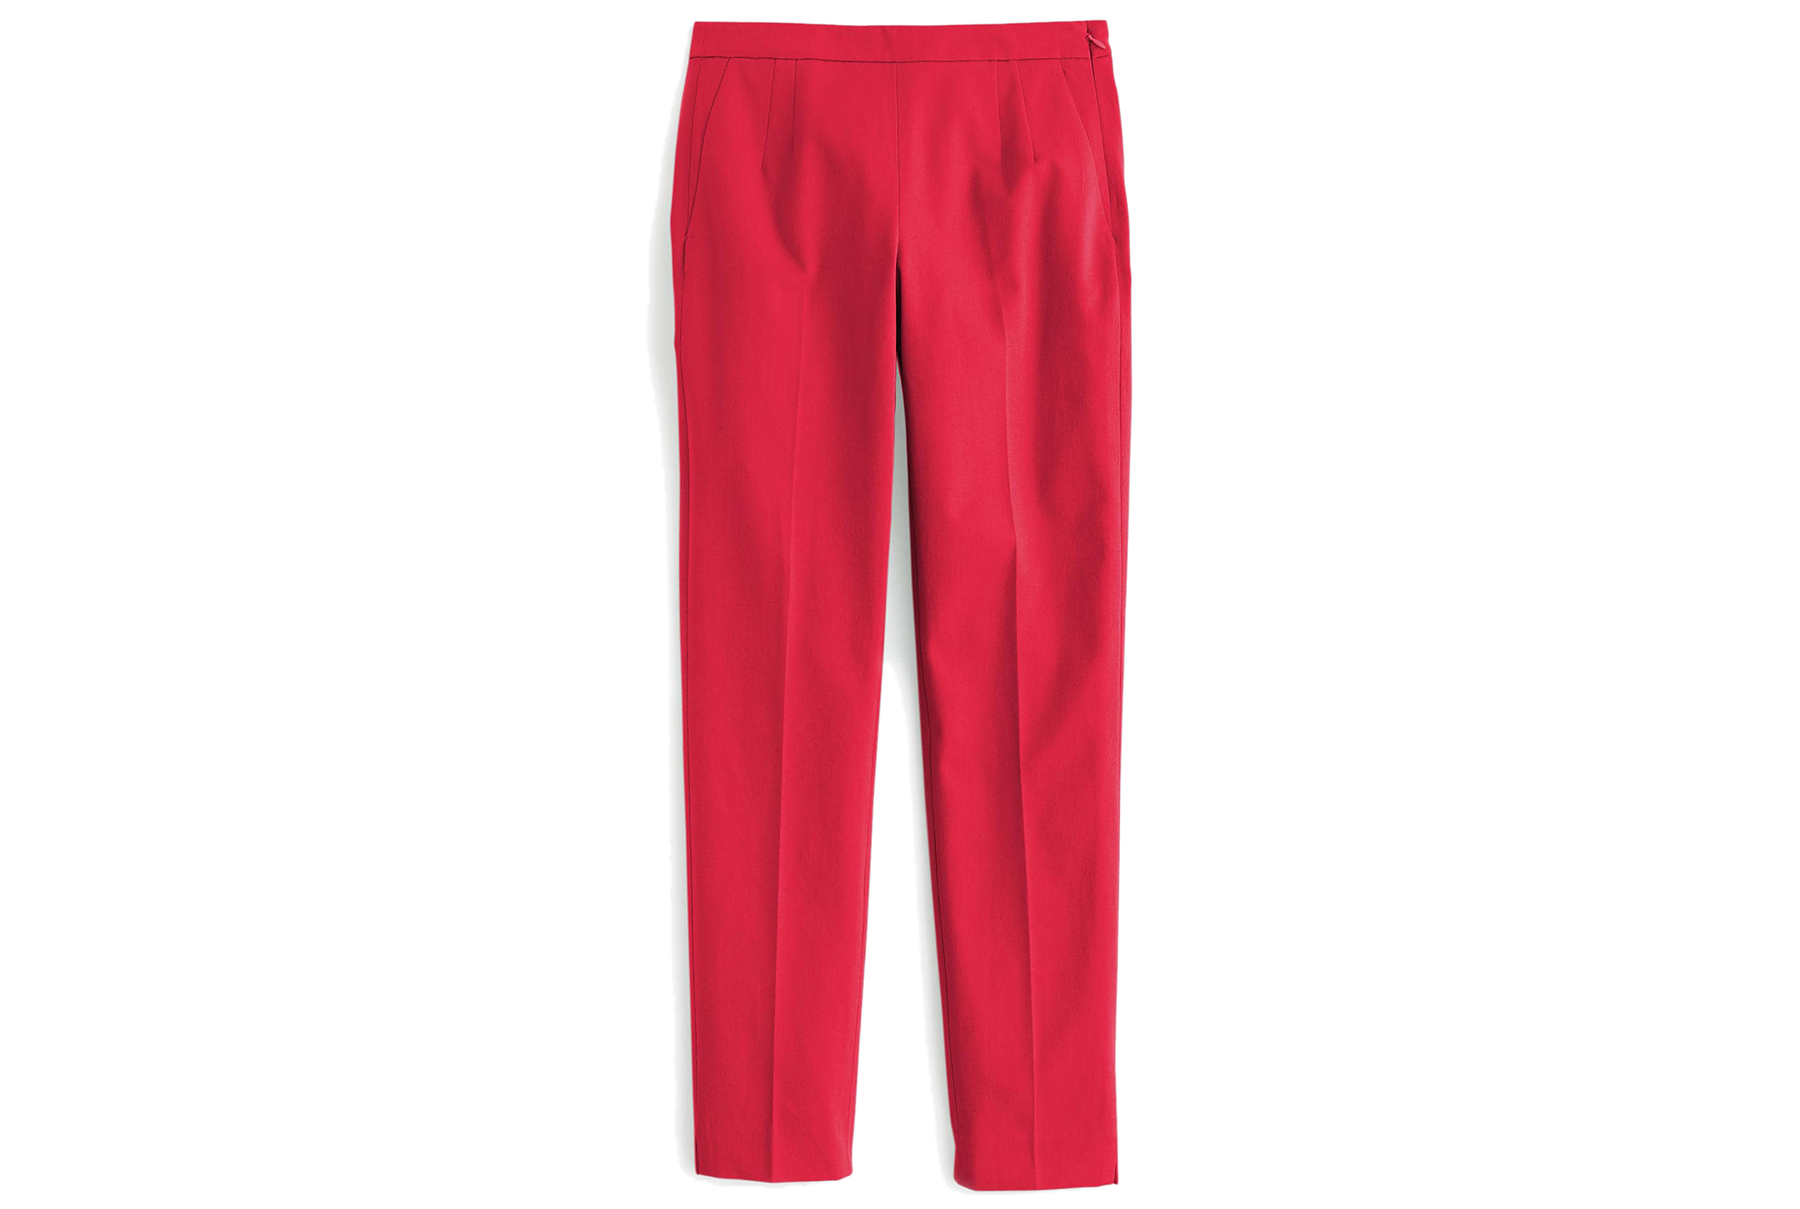 J.Crew Martie Slim Crop Pant in Two-Way Stretch Cotton